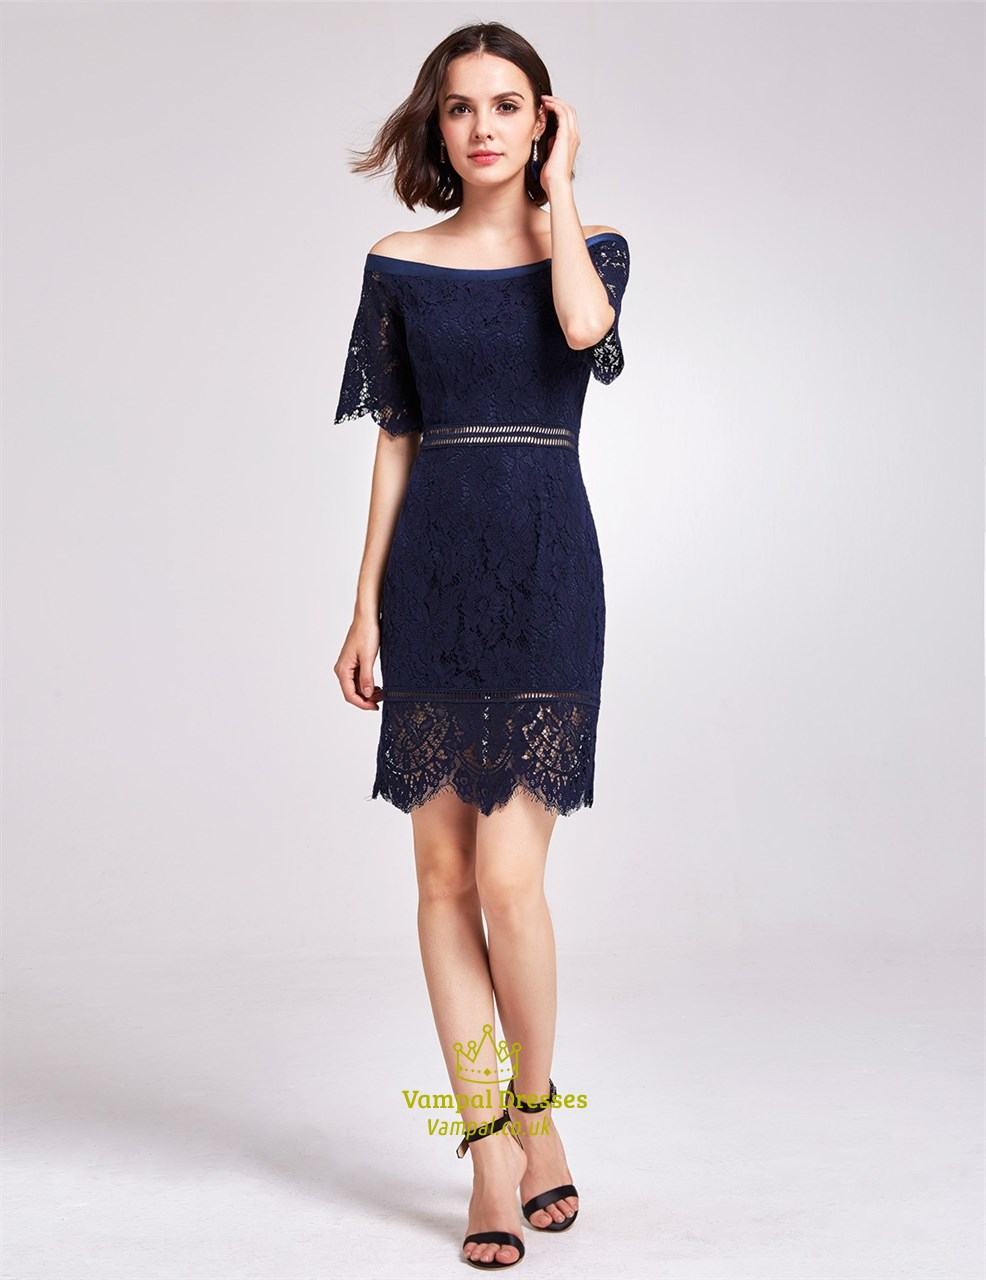 5da592dbd4e8 Navy Blue Off Shoulder Half Sleeve Short Sheath Lace Cocktail Dress SKU  -FS2933